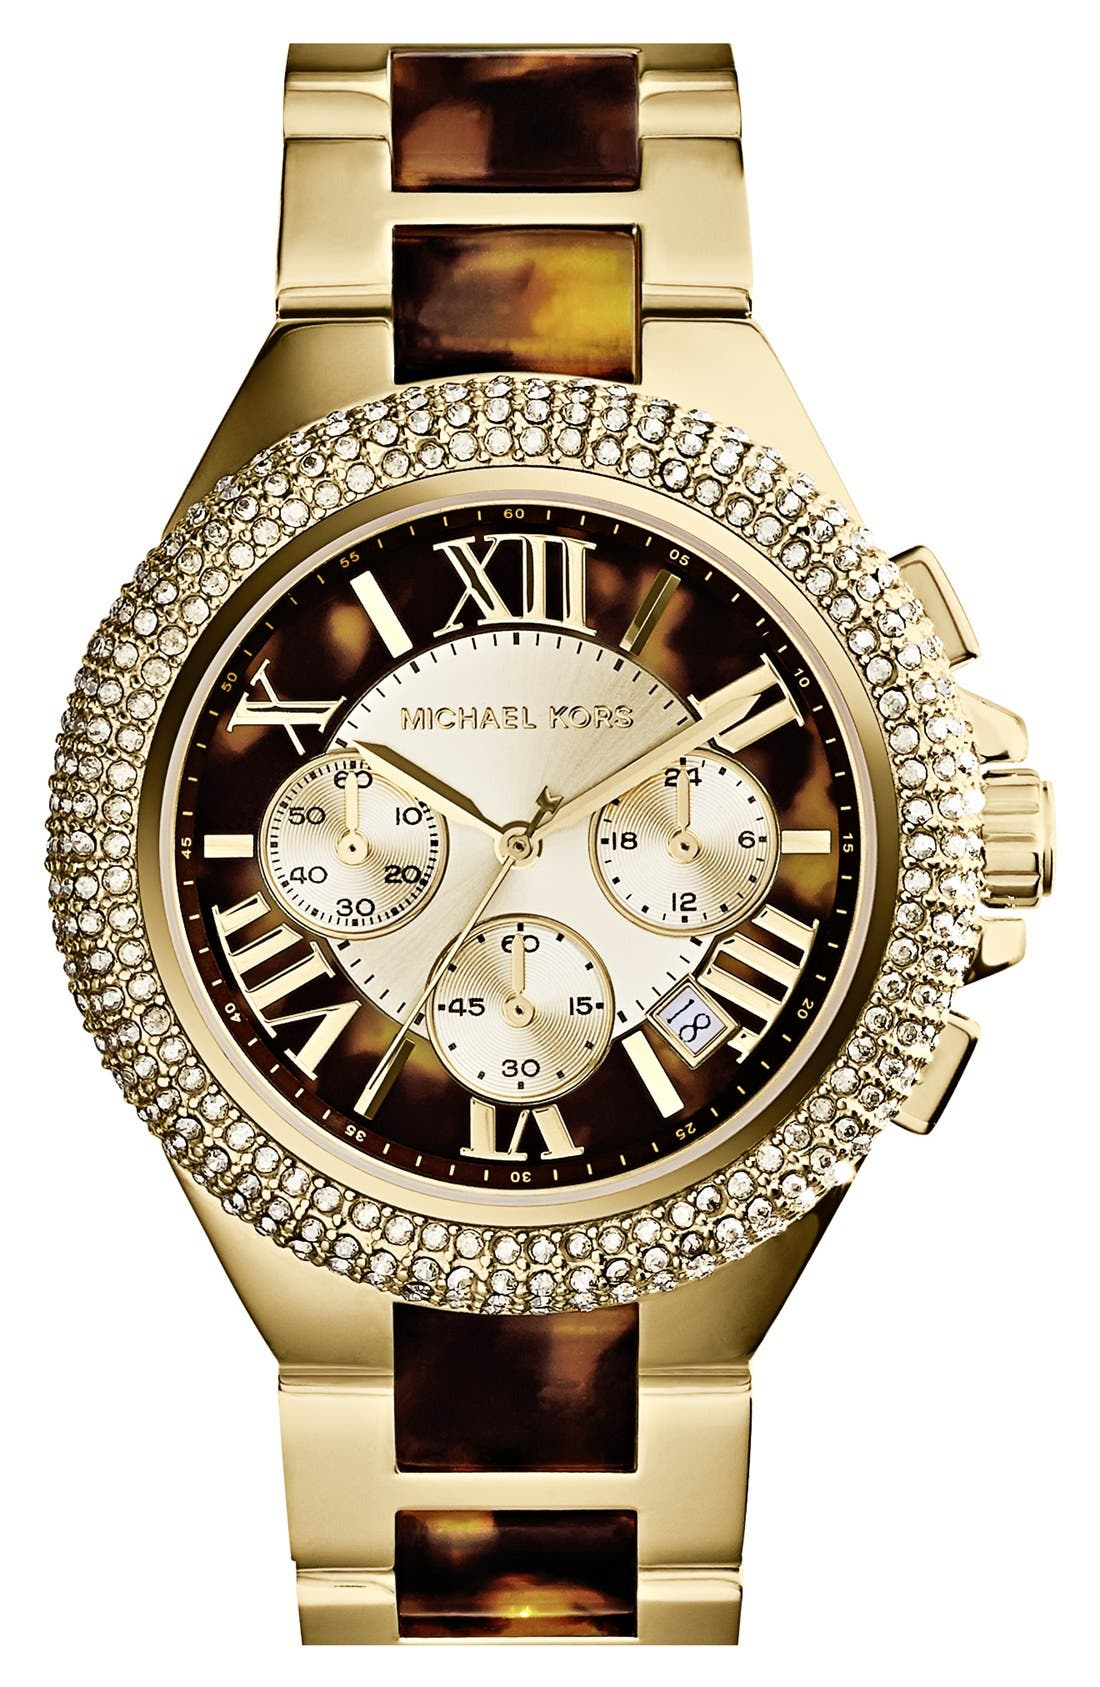 Main Image - Michael Kors 'Camille' Crystal Bezel Chronograph Bracelet Watch, 43mm